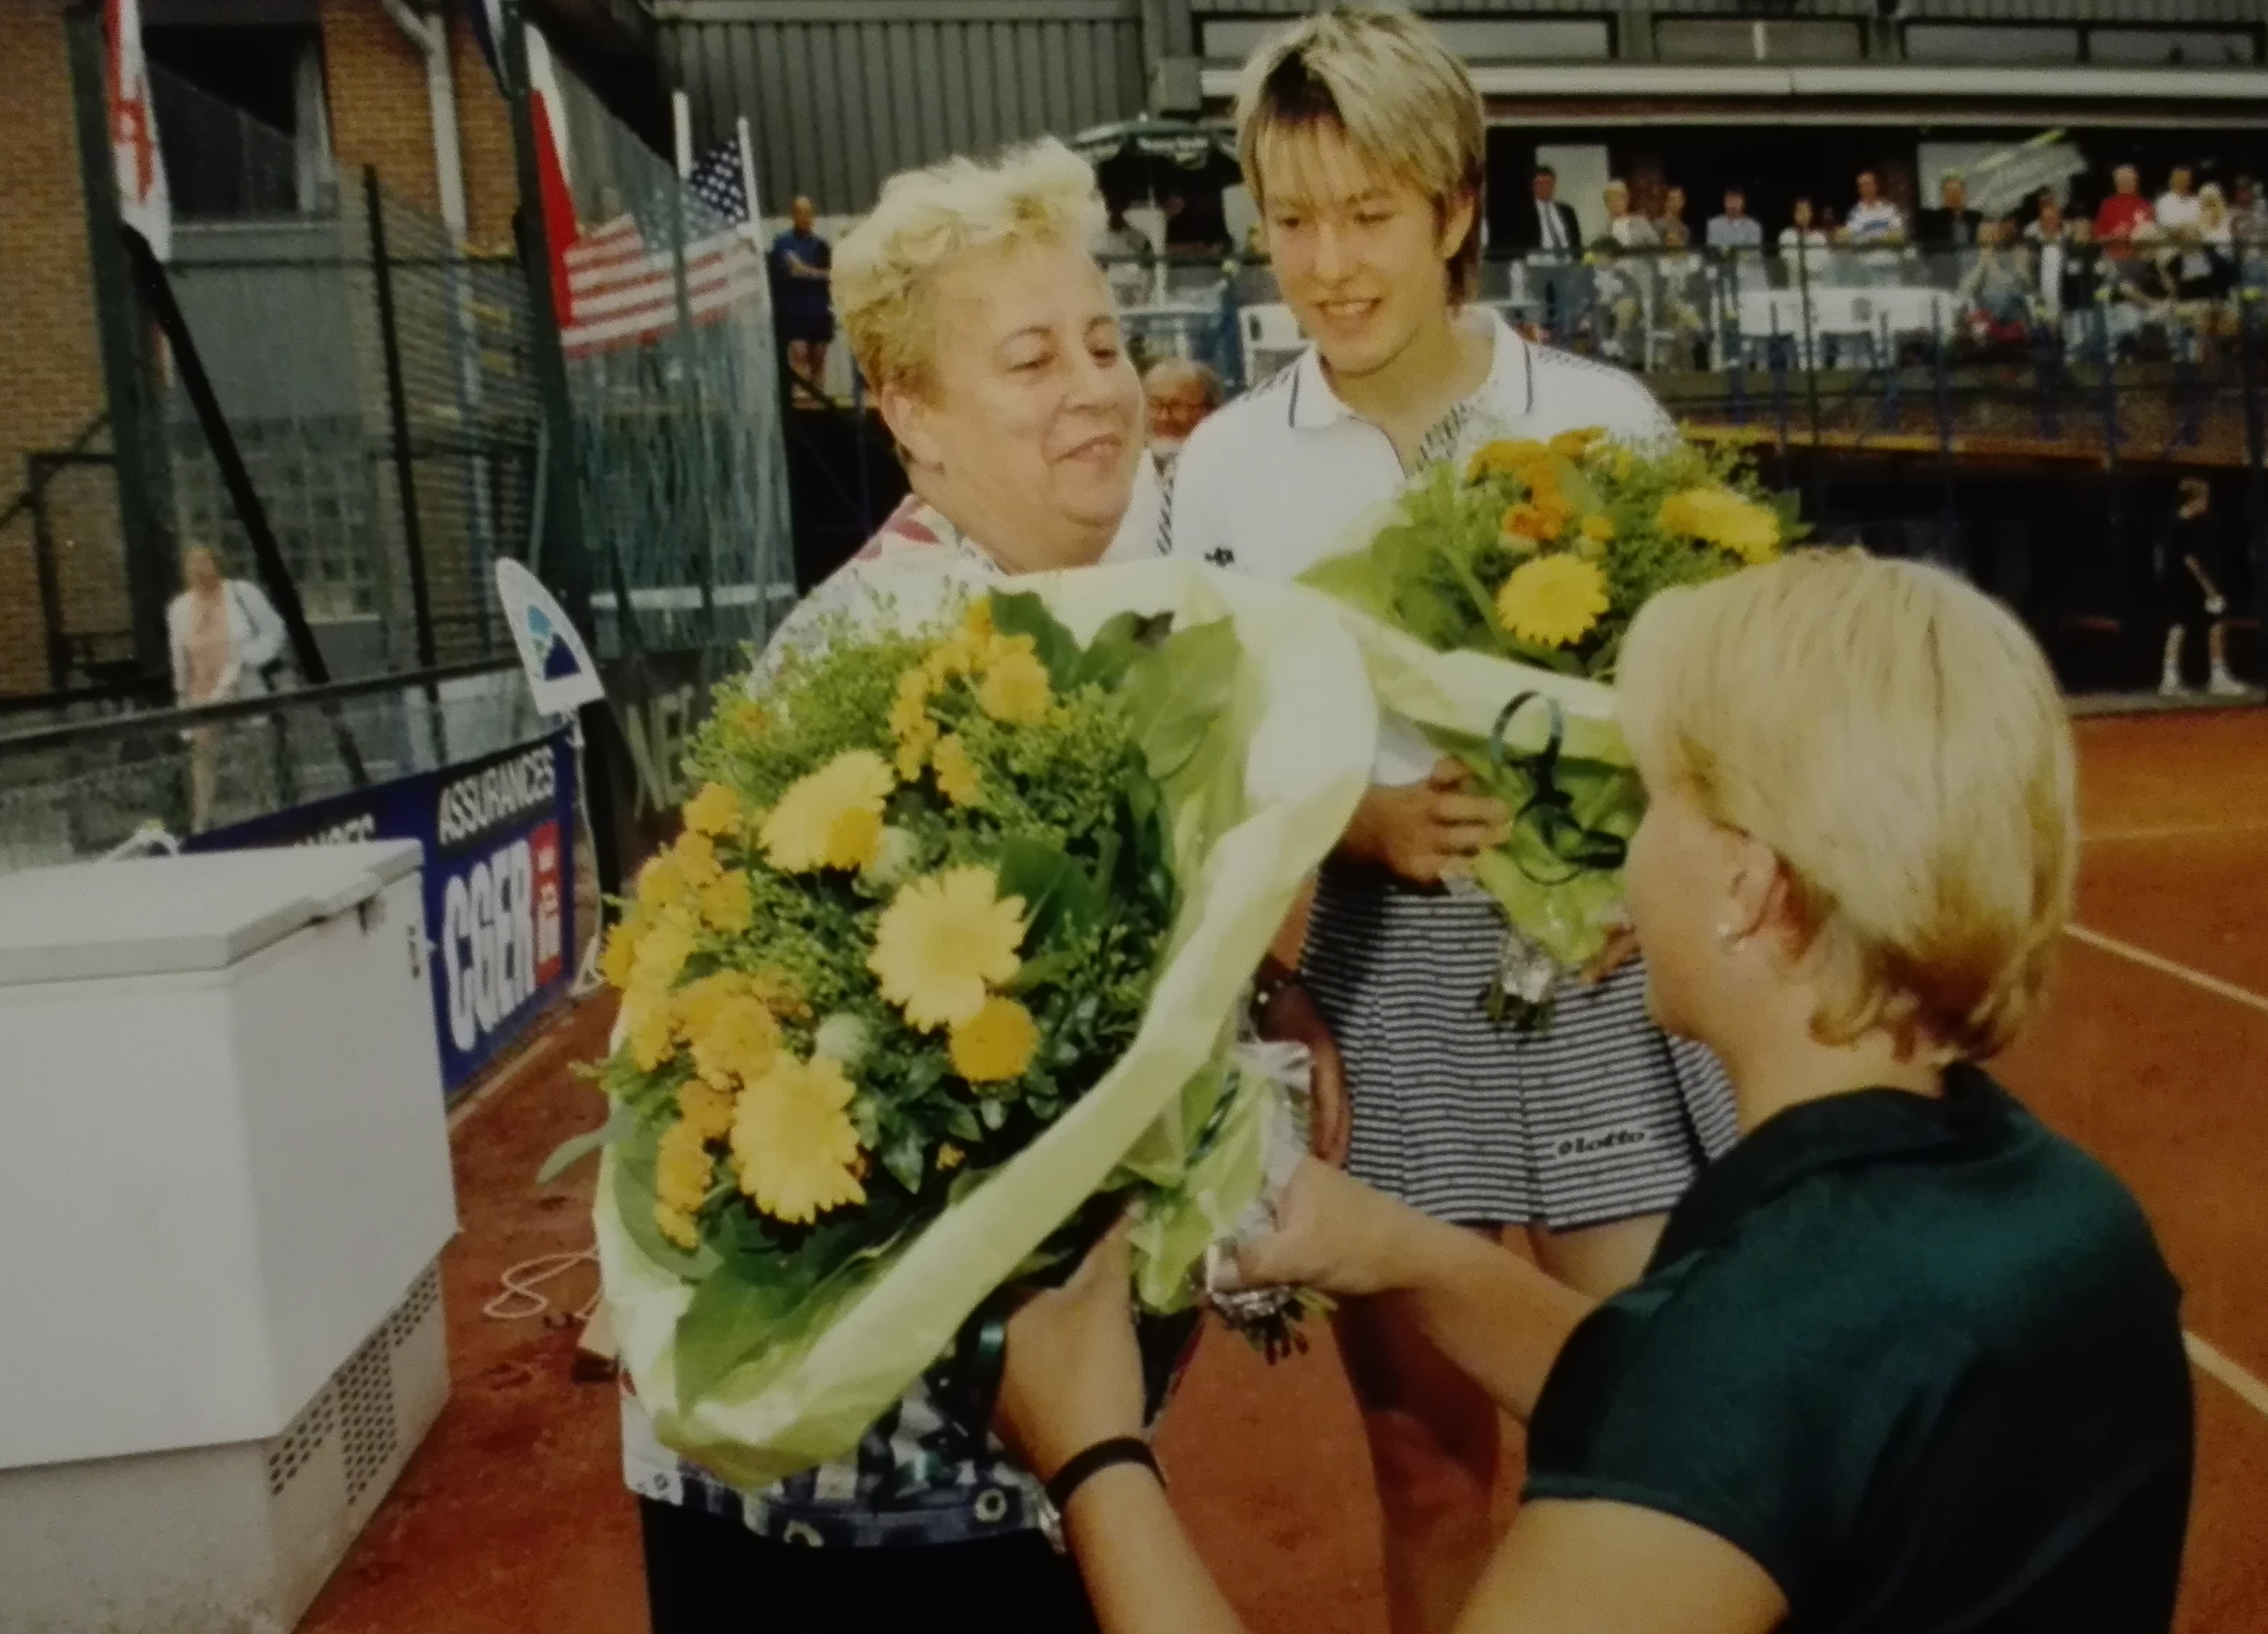 Exhibition 1997 - Justine Henin et Esther Vergeer